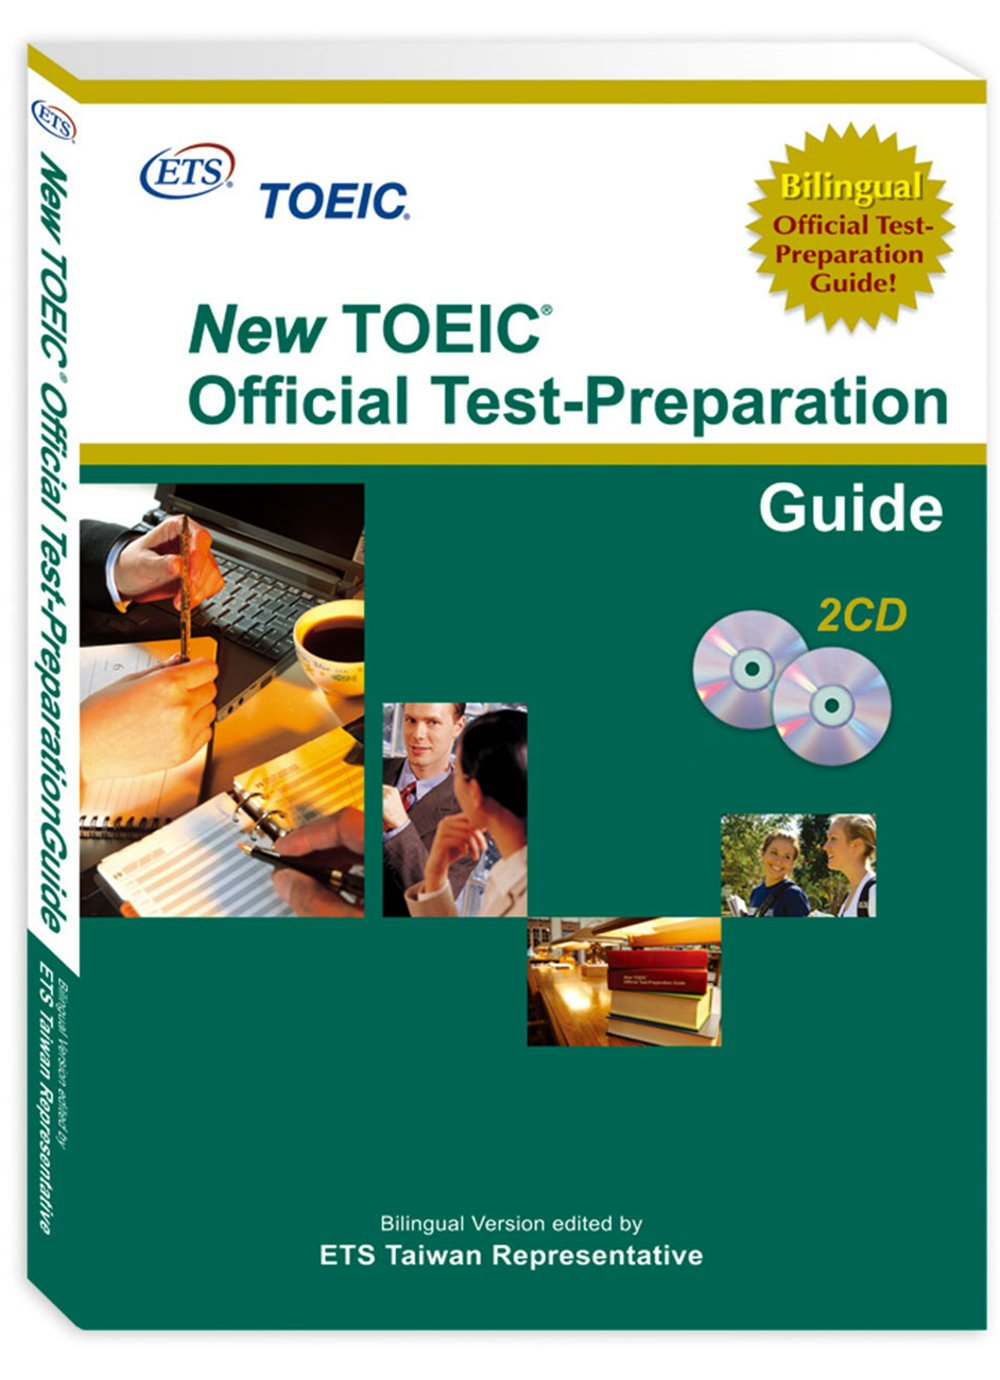 New TOEIC offical test preparation guide